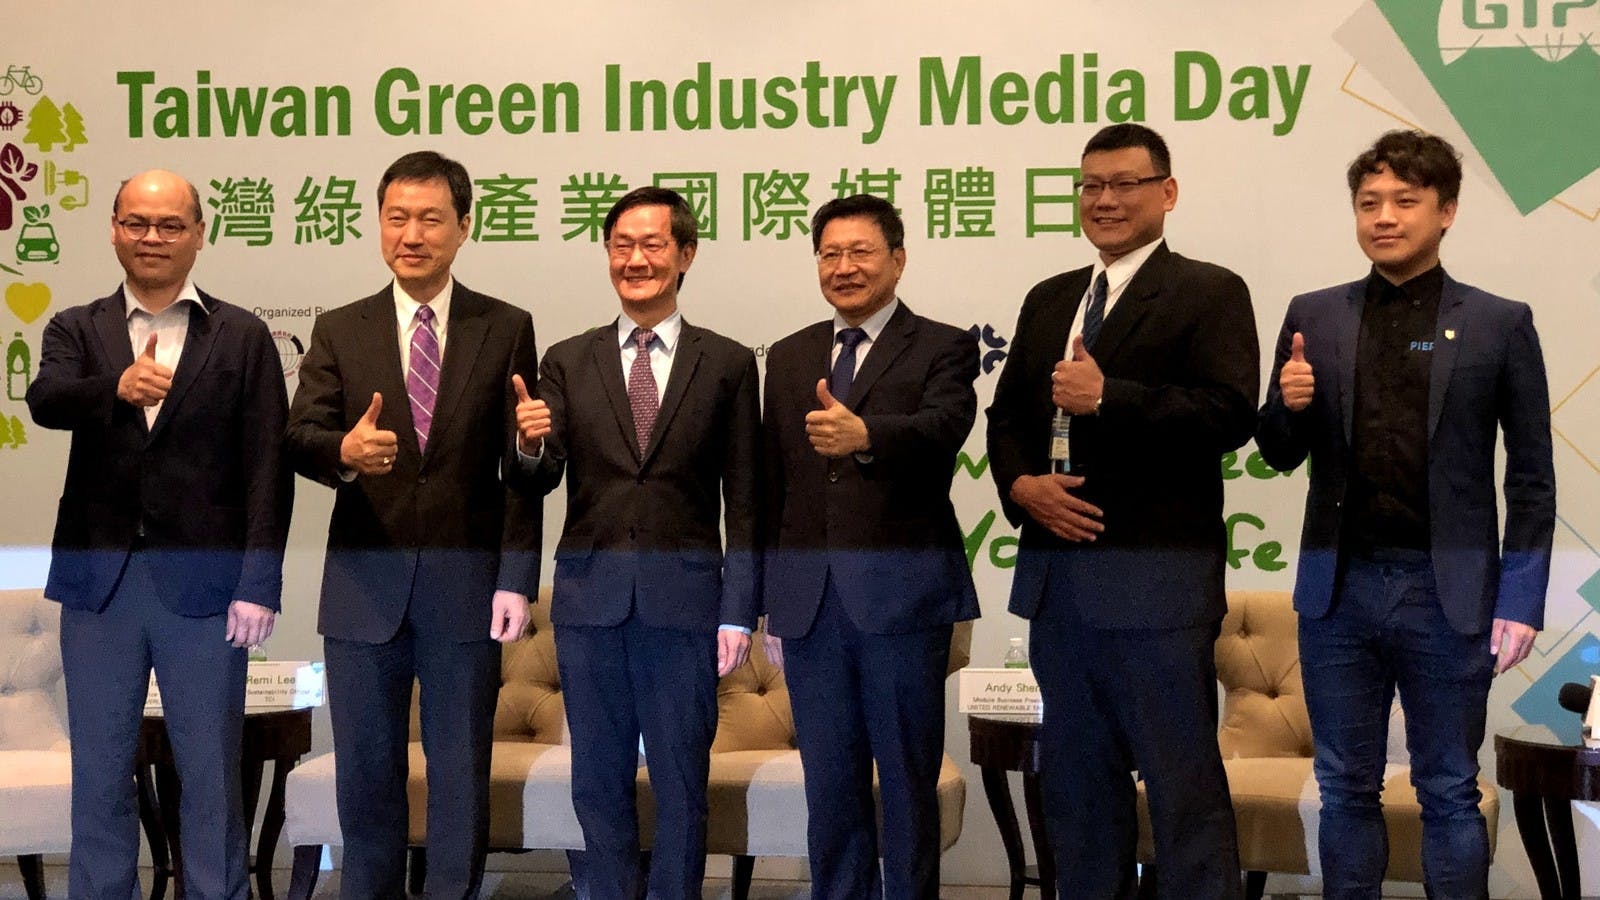 The Island Motivated by Green Industry: Green Industry in Taiwan Wins International Reputation and Expresses Its Energy on Sustainability